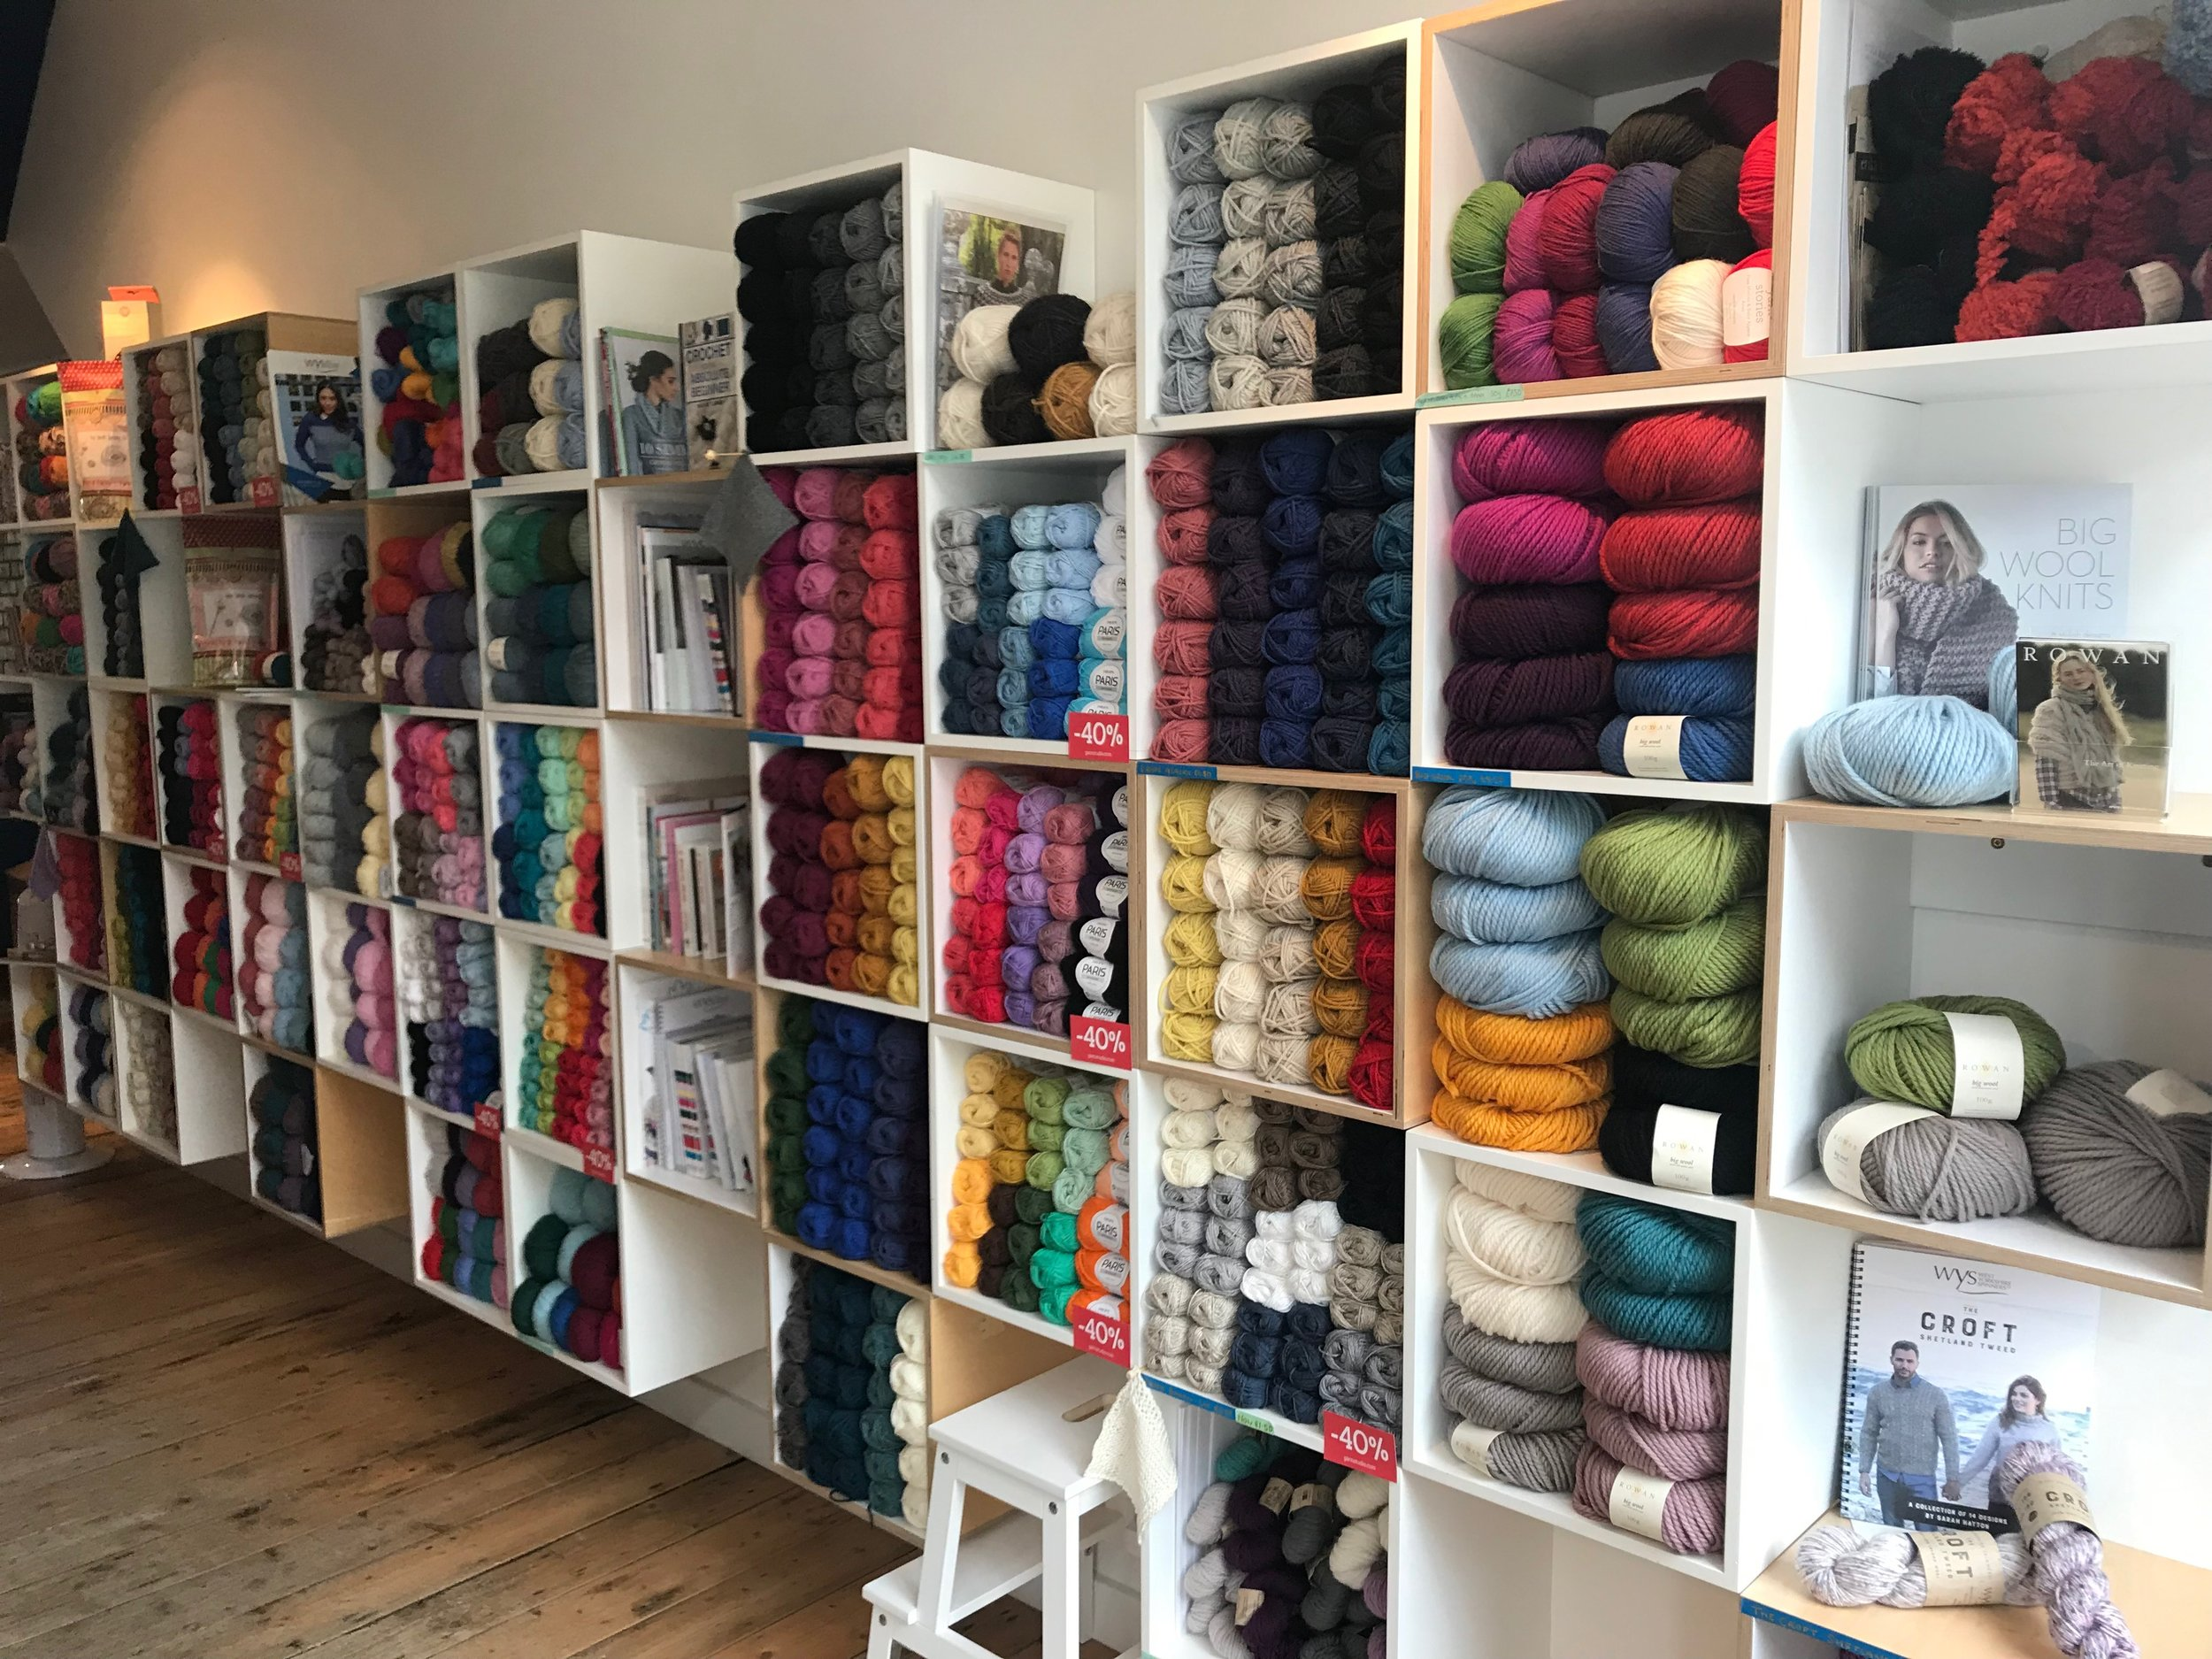 Lots of choice awaits at Slipstitch!